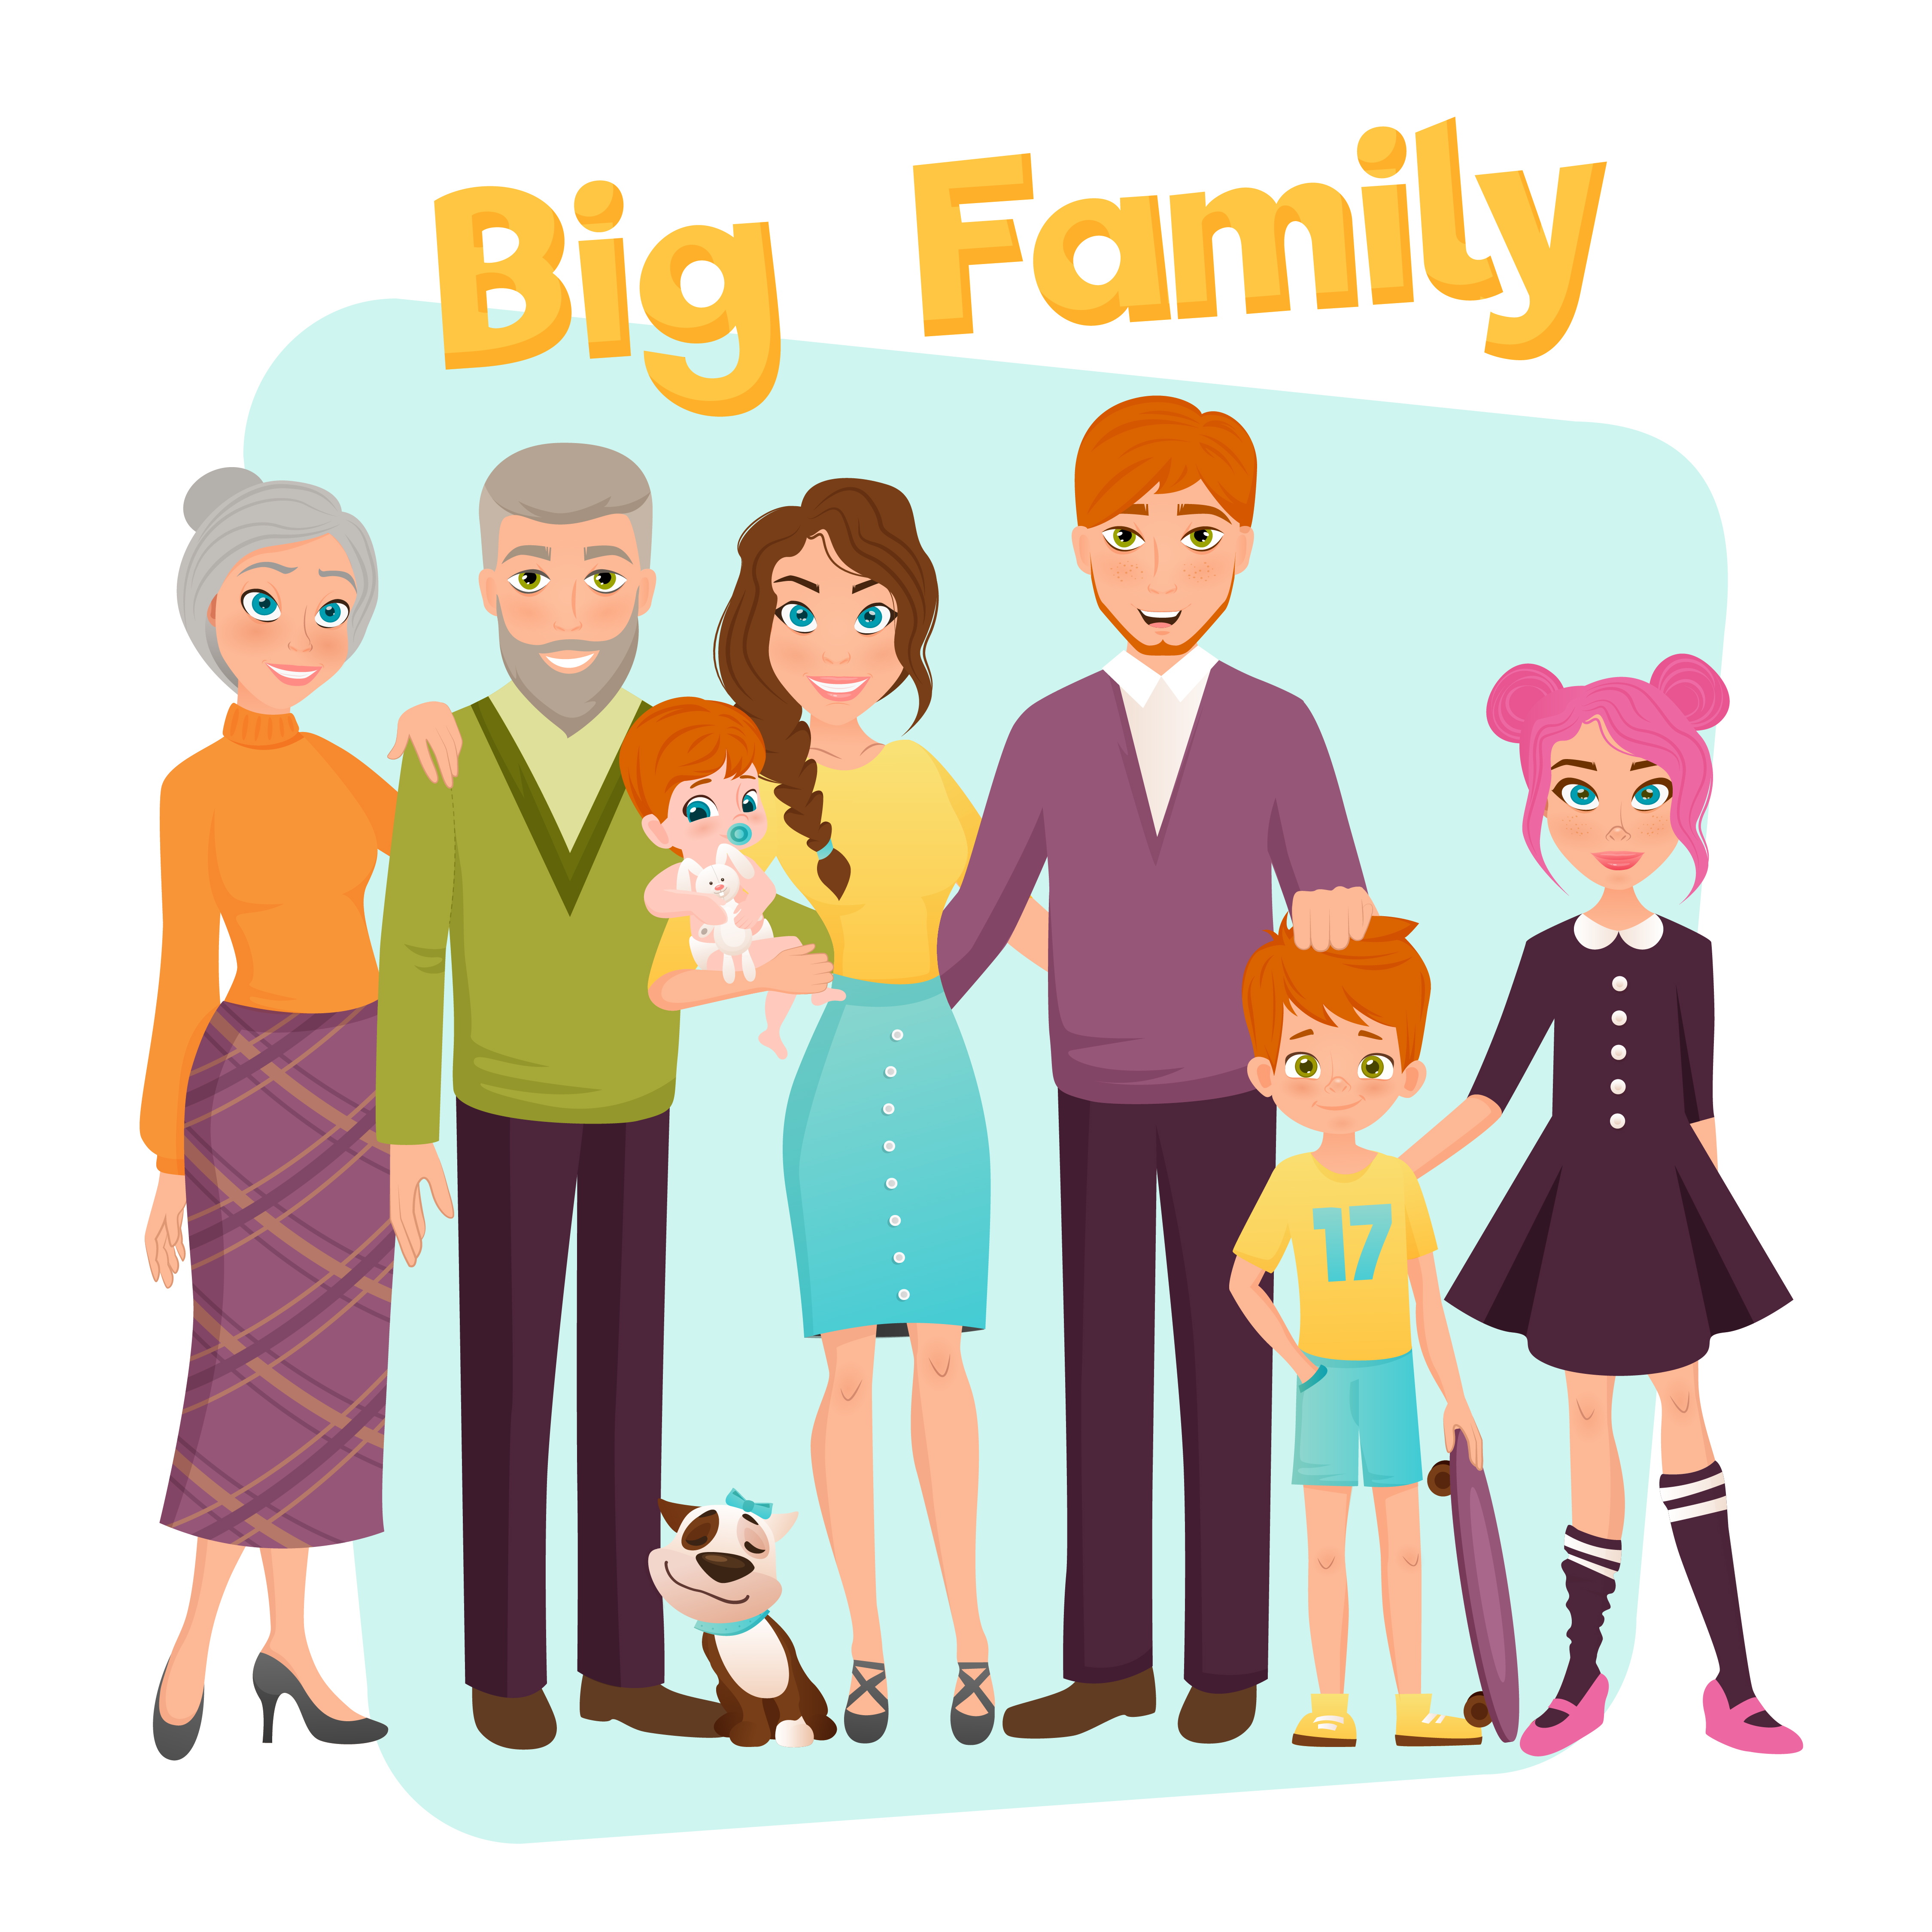 Free Picture Of A Family, Download Free Clip Art, Free Clip Art on Clipart  Library